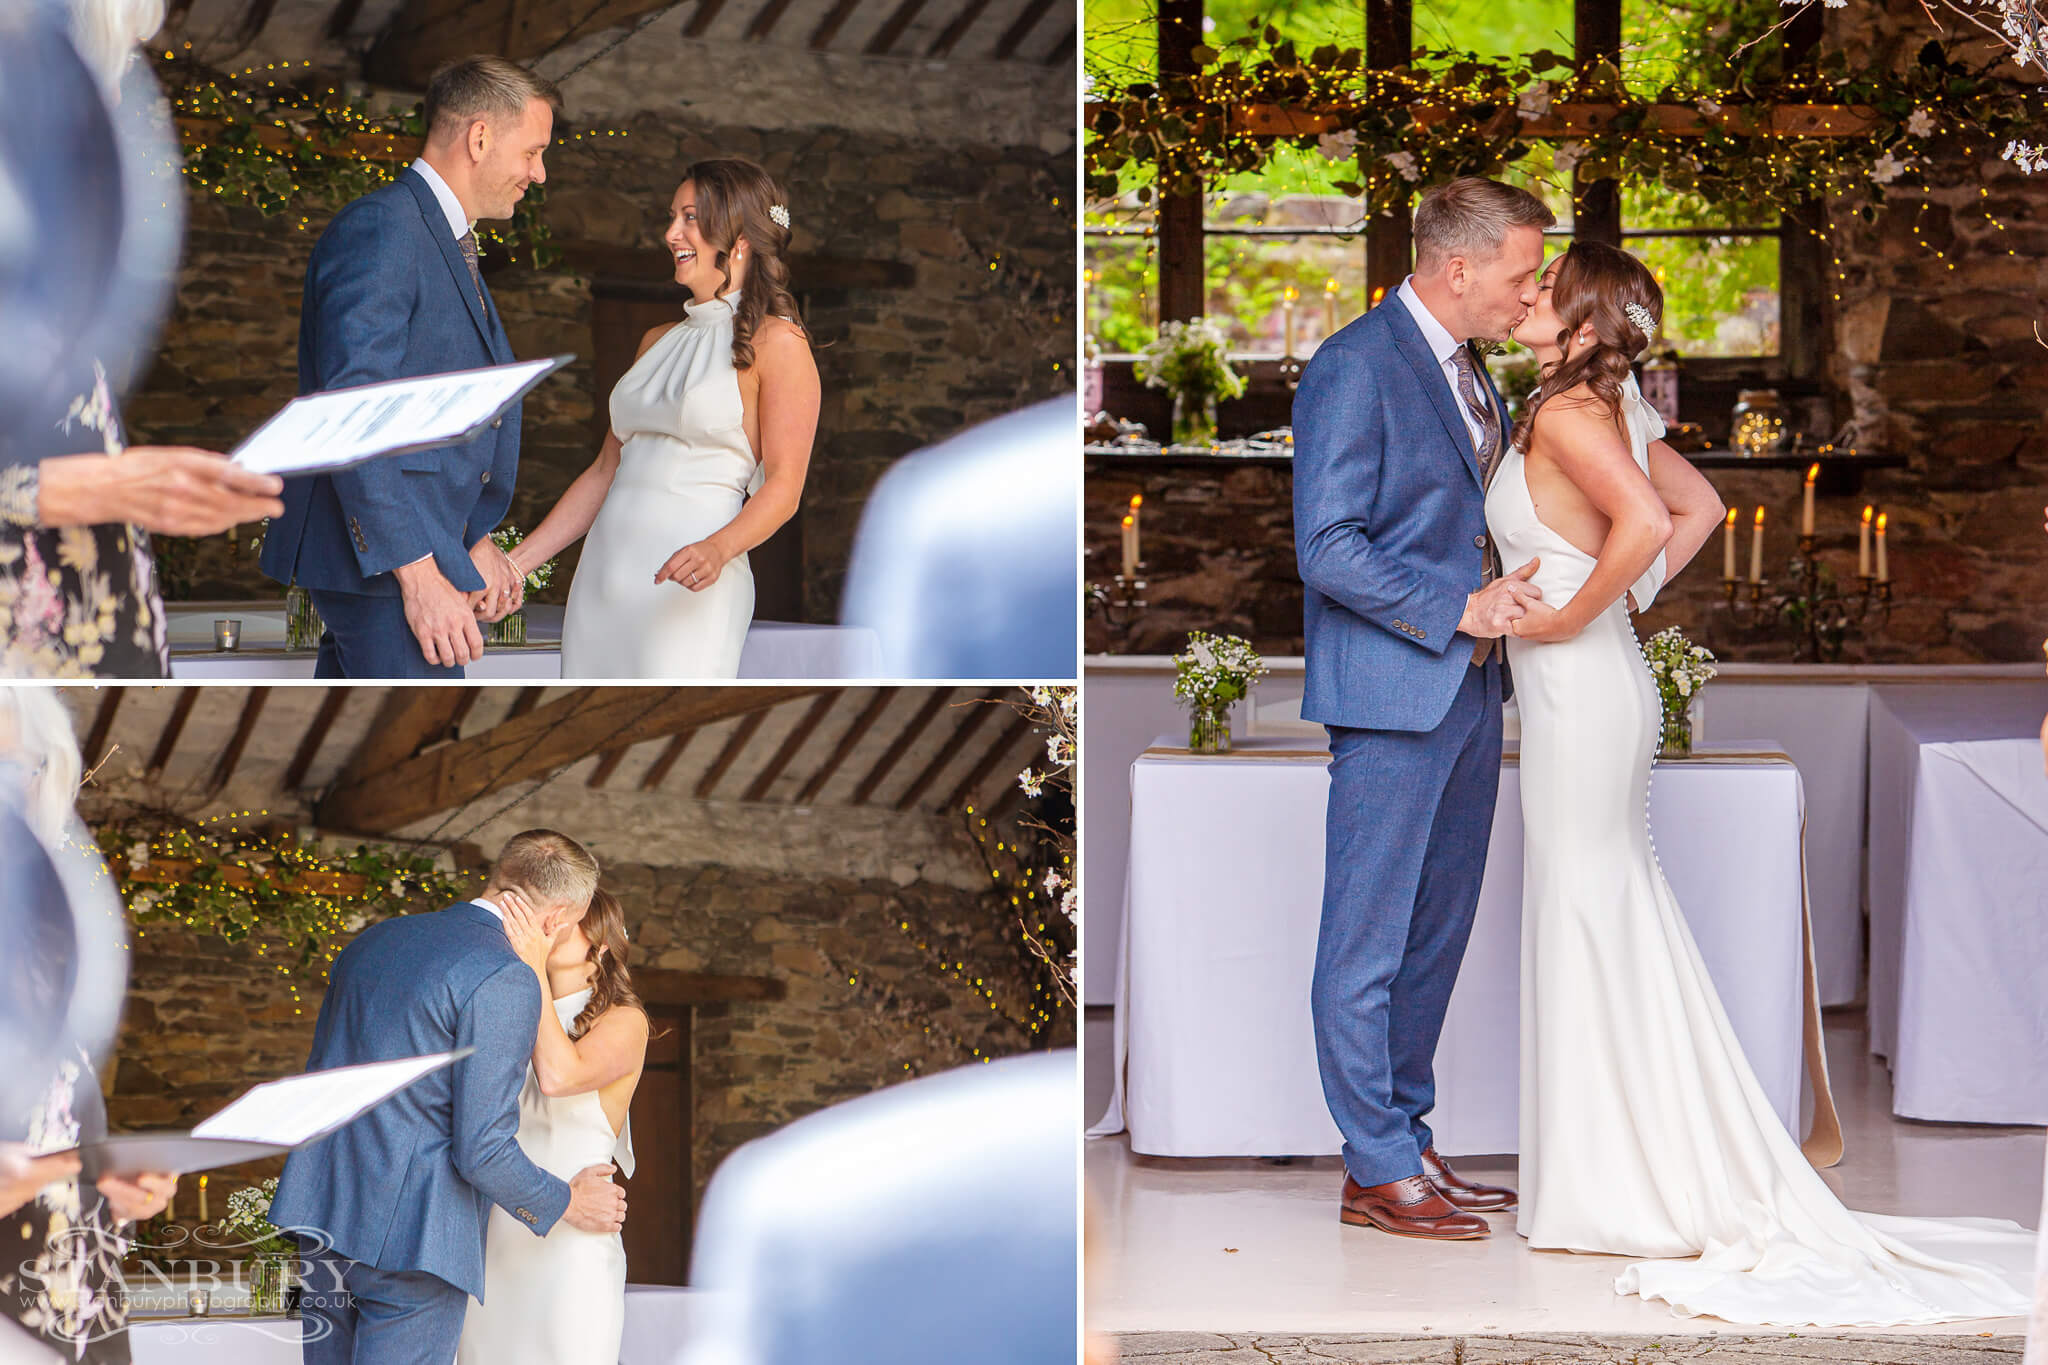 kissing-bride-groom-cote-how-wedding-photography